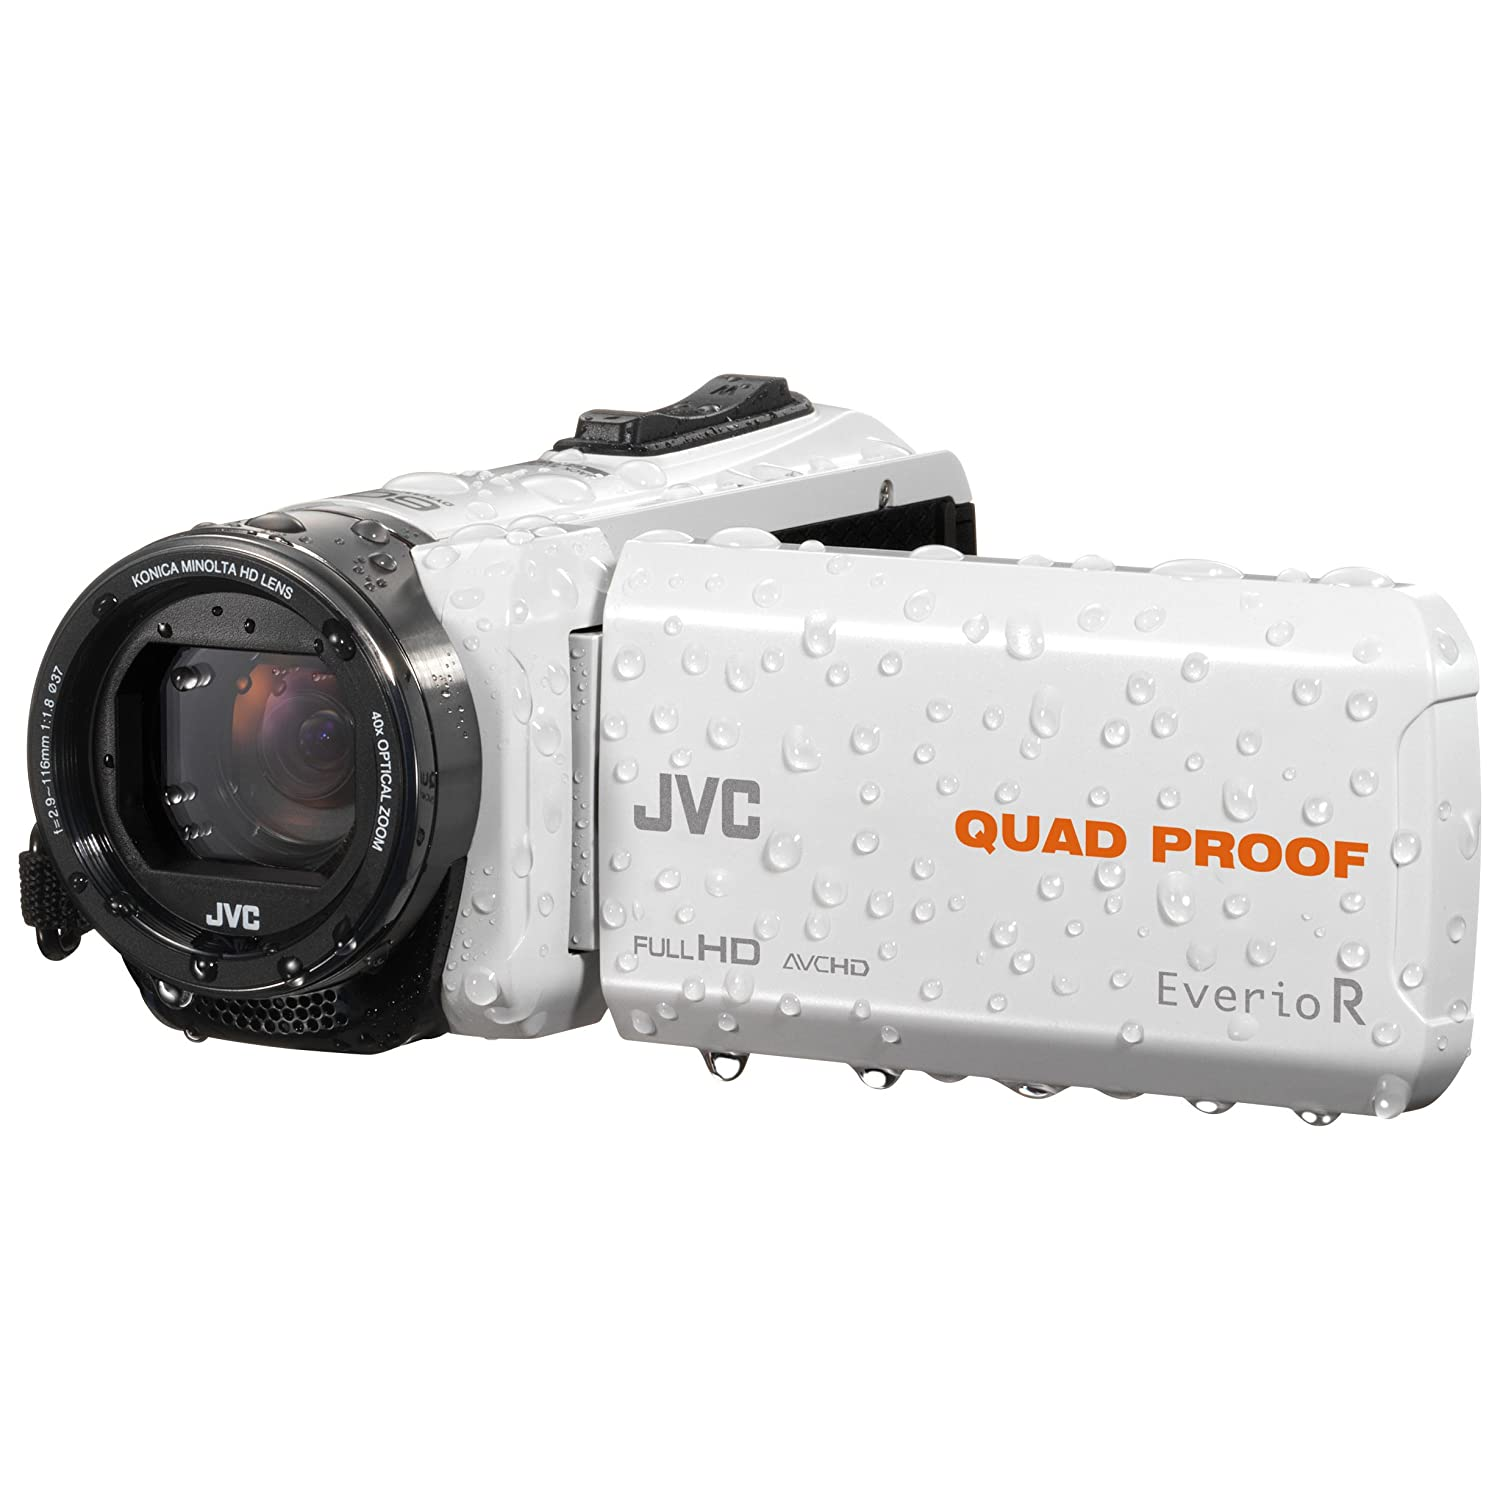 JVC GZ-R435 - Videocámara (2,5 MP, CMOS, 25,4/5,8 mm (1/5.8